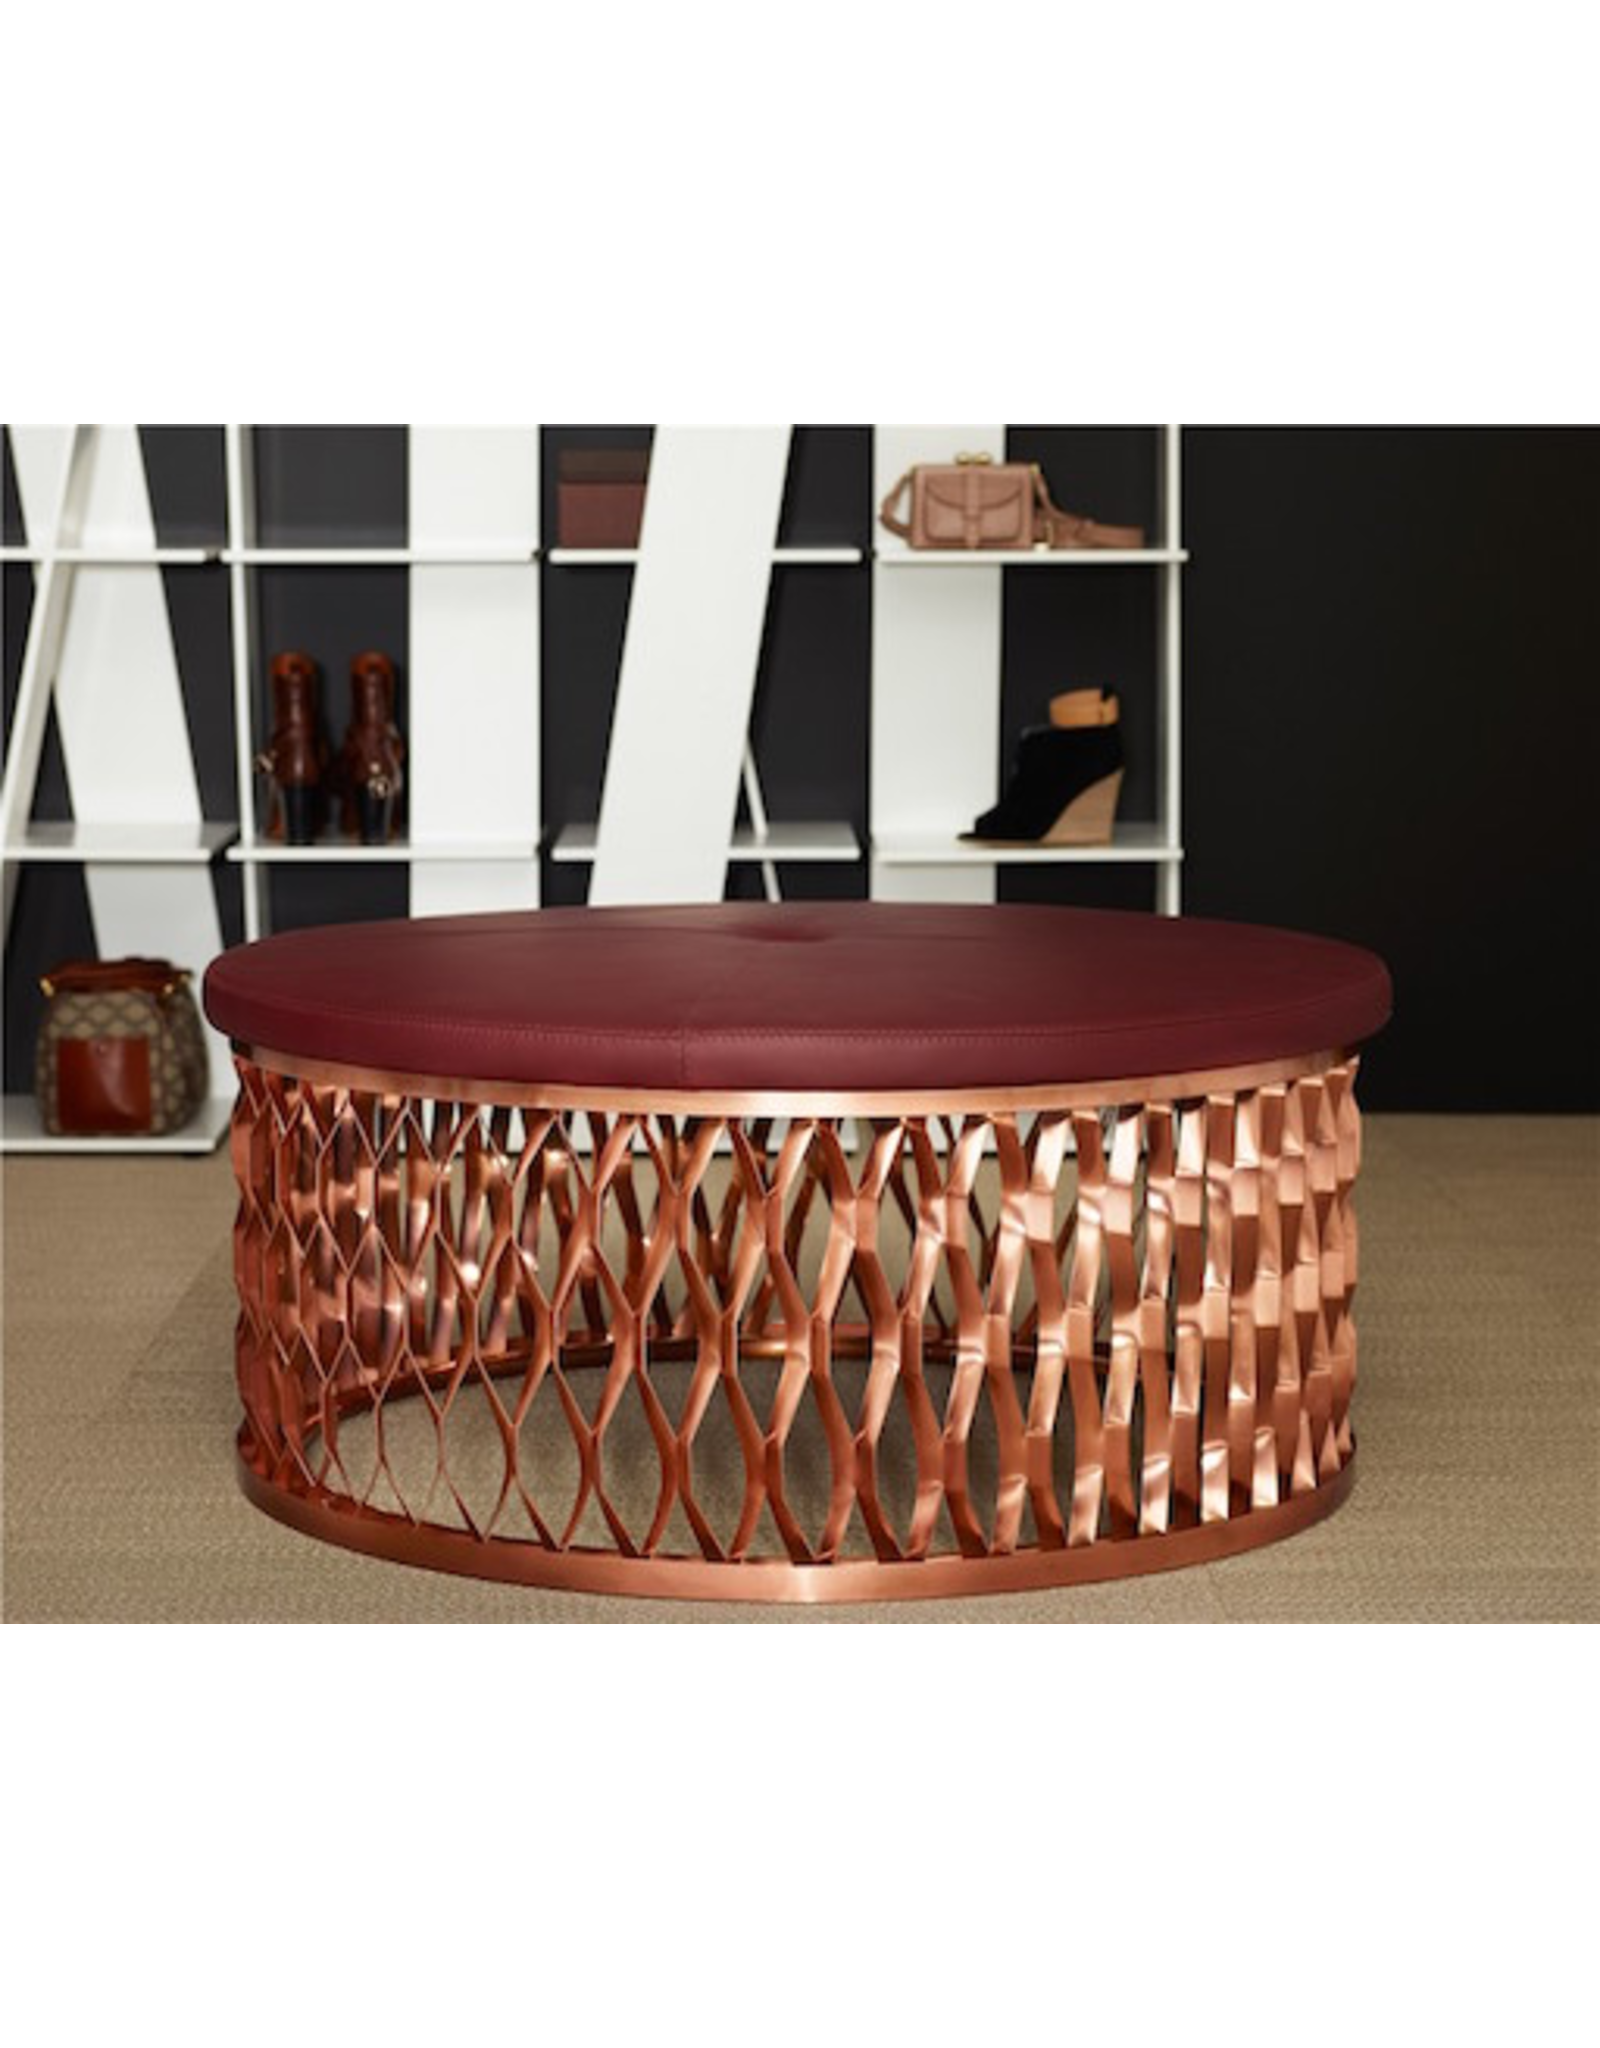 (DISPLAY) STEELO OTTOMAN EXTRUDED METAL BASE IN COPPER